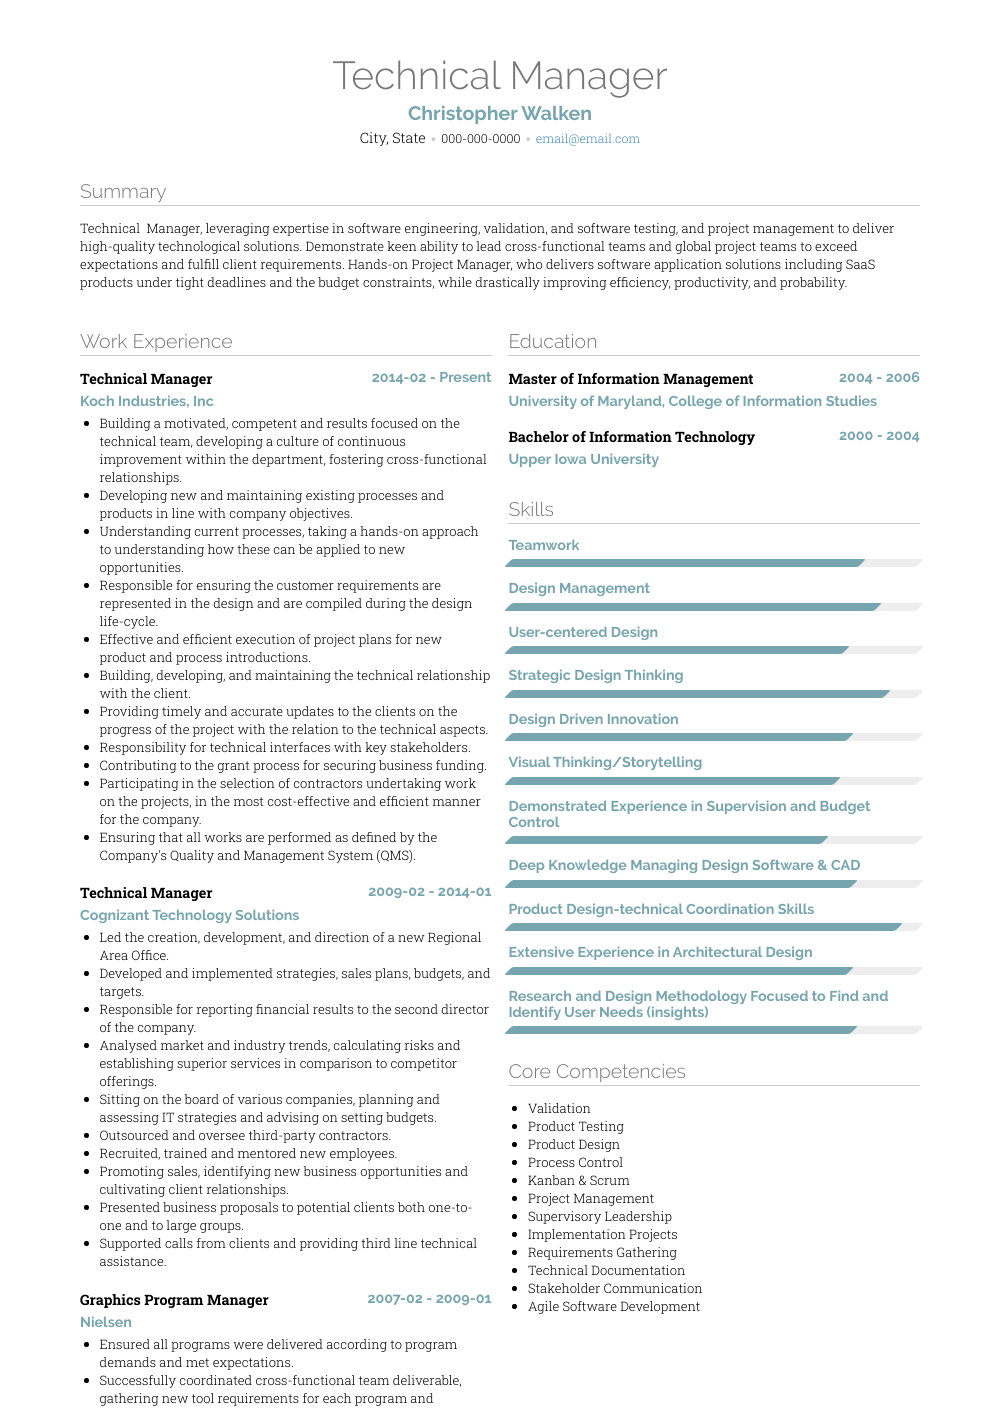 Technical Manager Resume Sample and Template